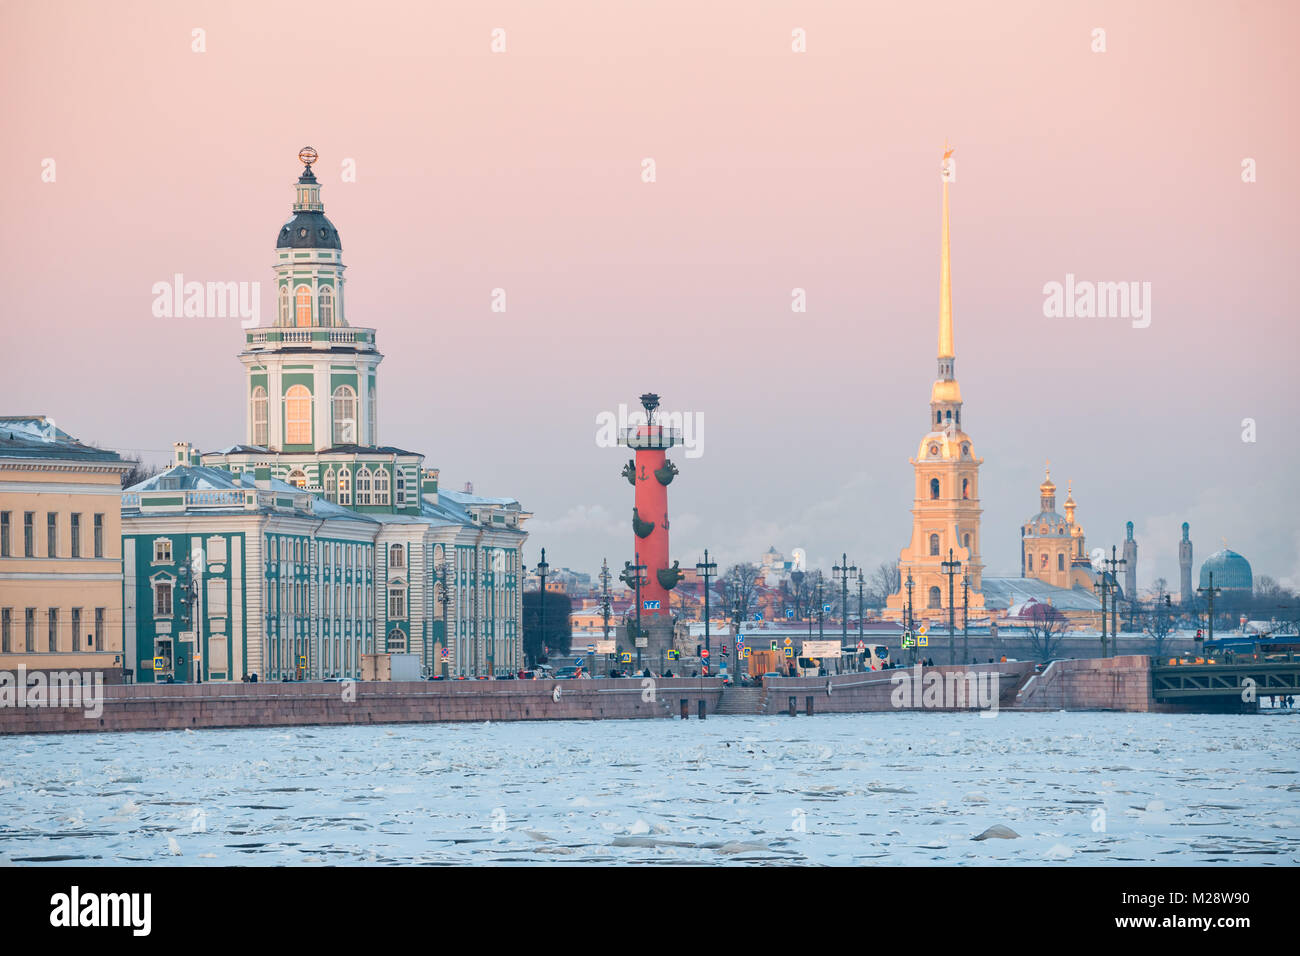 View of the St. Petersburg embankment at sunset in winter, an urban landscape in pastel colors - Stock Image